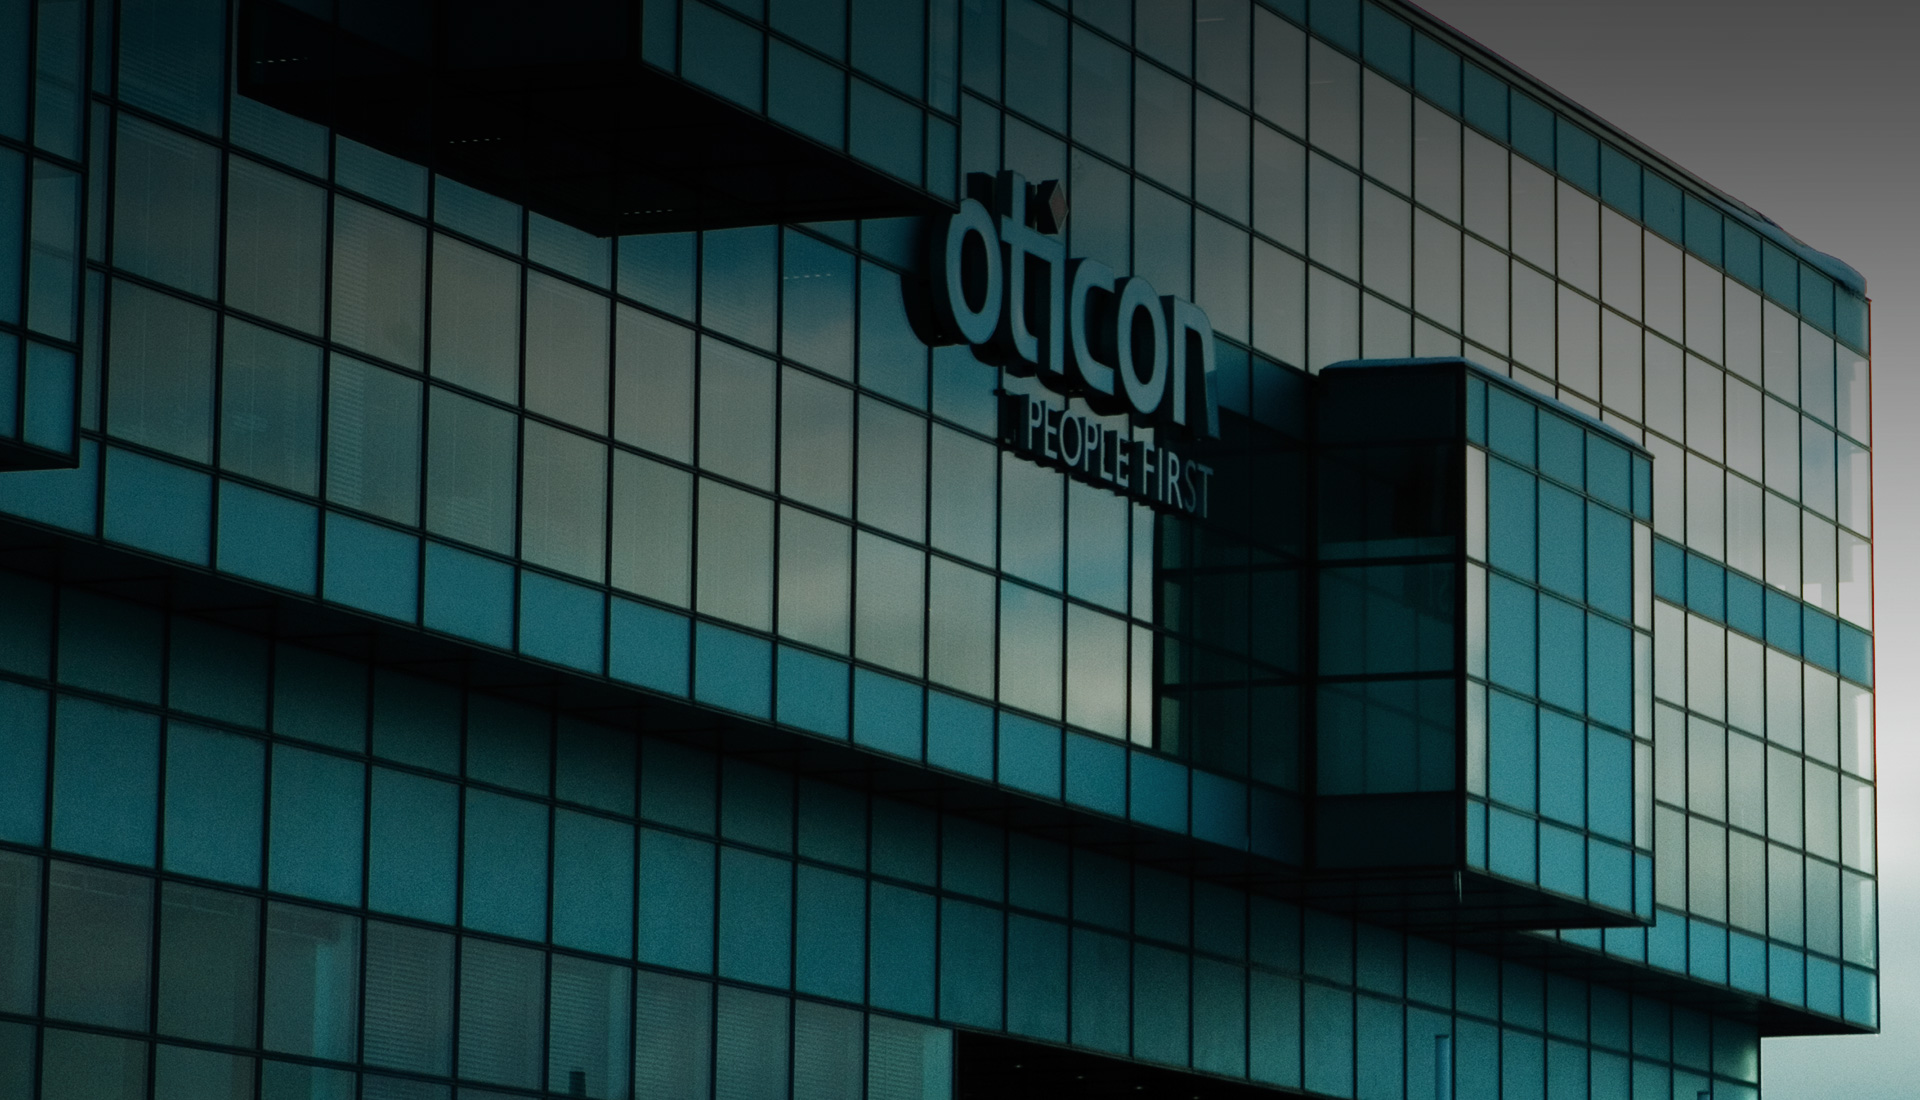 Oticon People First logo on building-1920x900